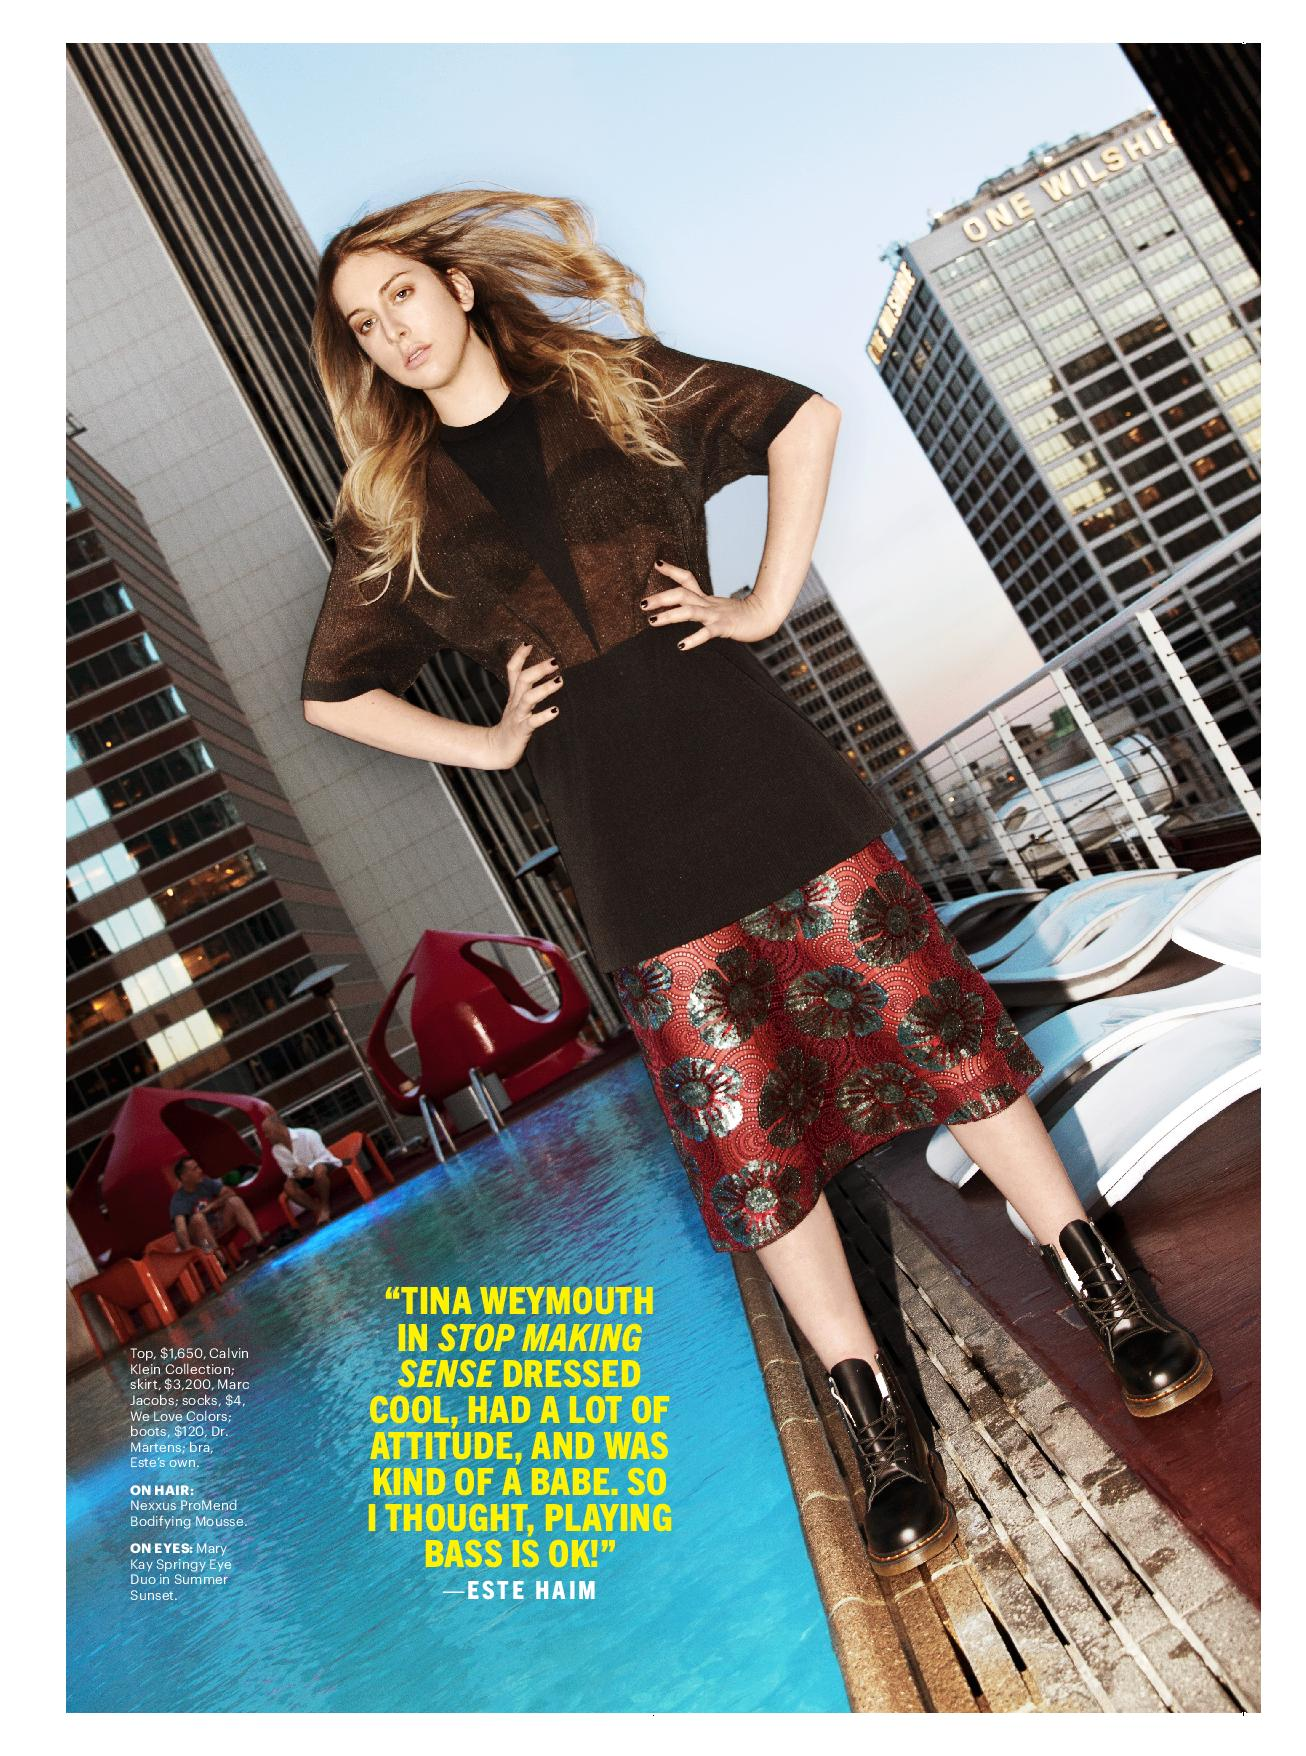 HAIM Marie Claire-page-006 copy.jpg